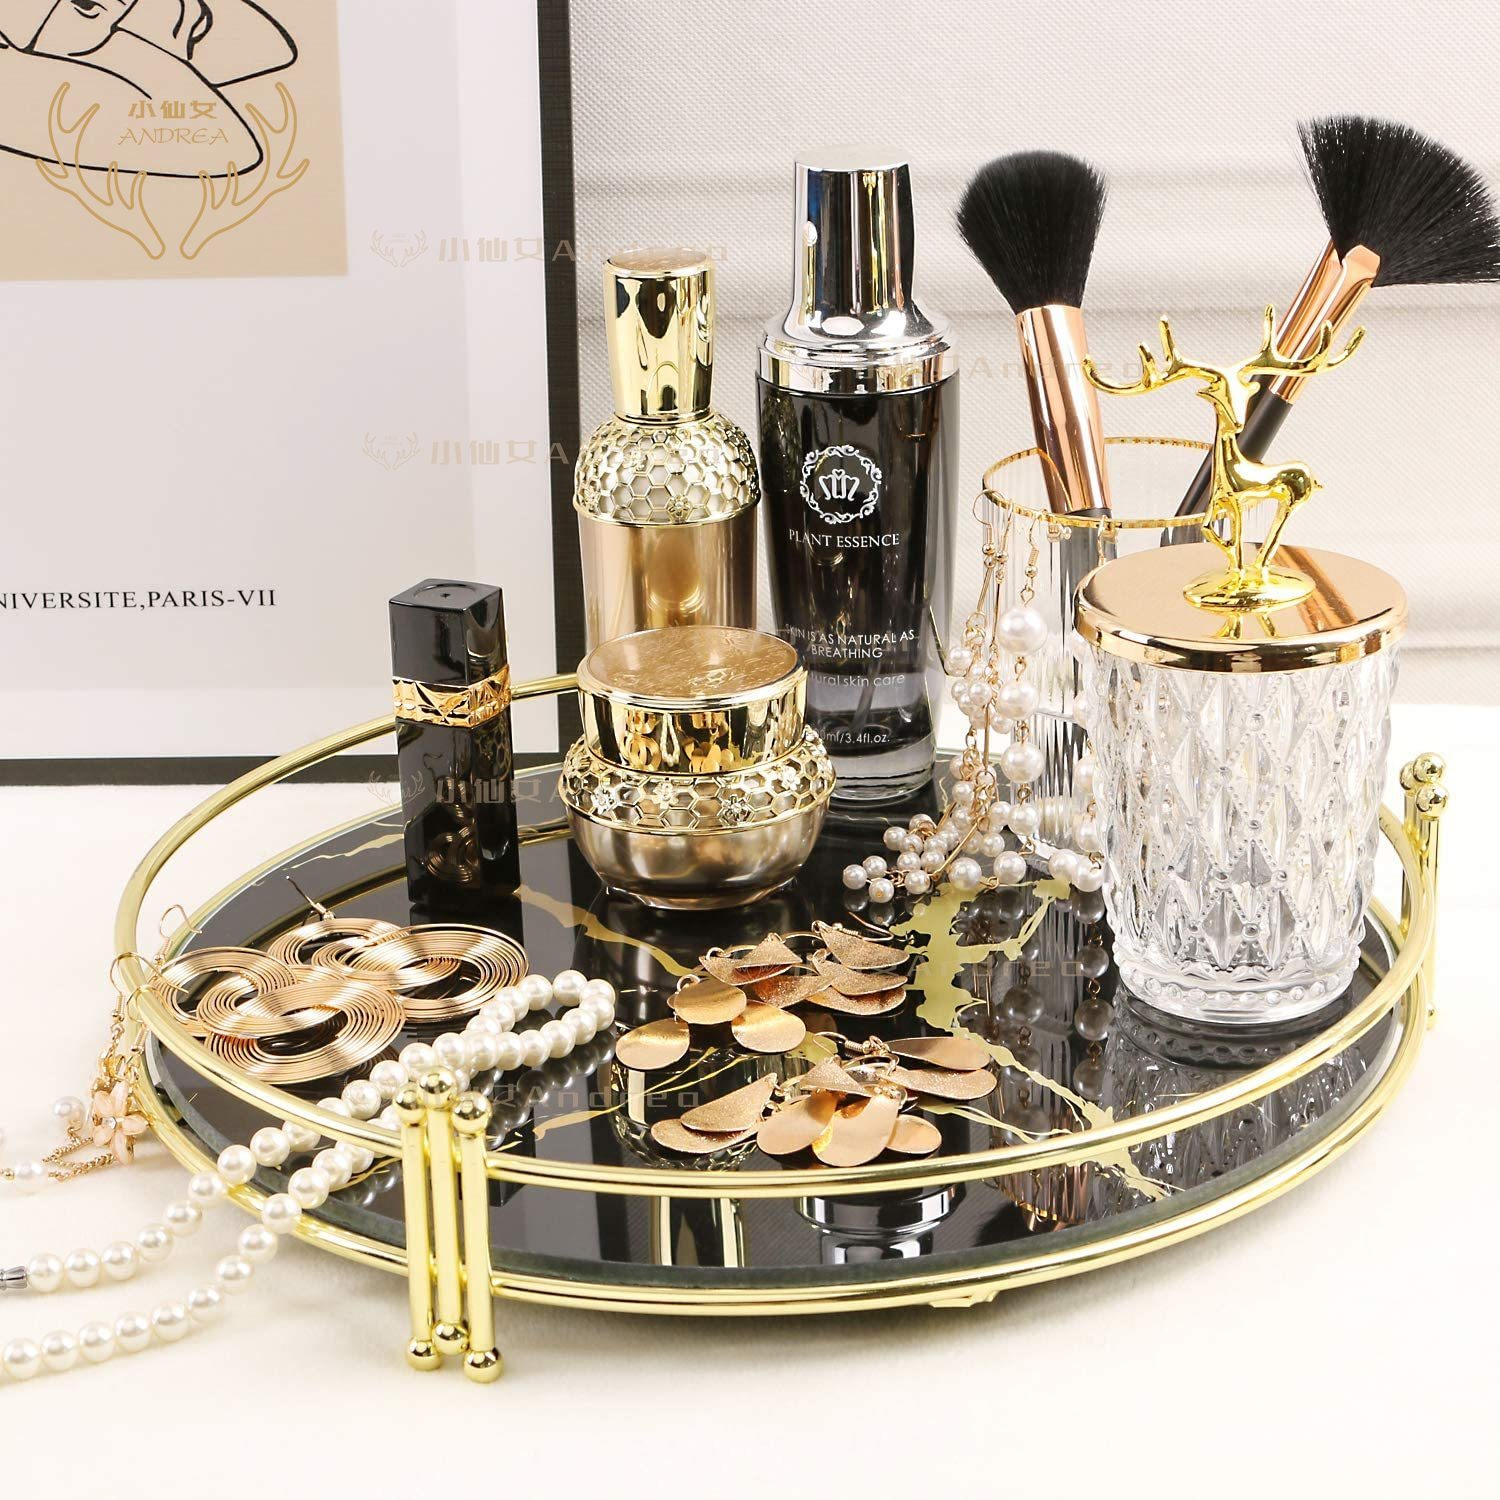 Makeup Organizer Tray Decorative Glass Vanity Tray Round Cosmetic Storage For Jewelry Makeup Perfume Decor And More Size 11 5 Black Marbling Shopee Singapore